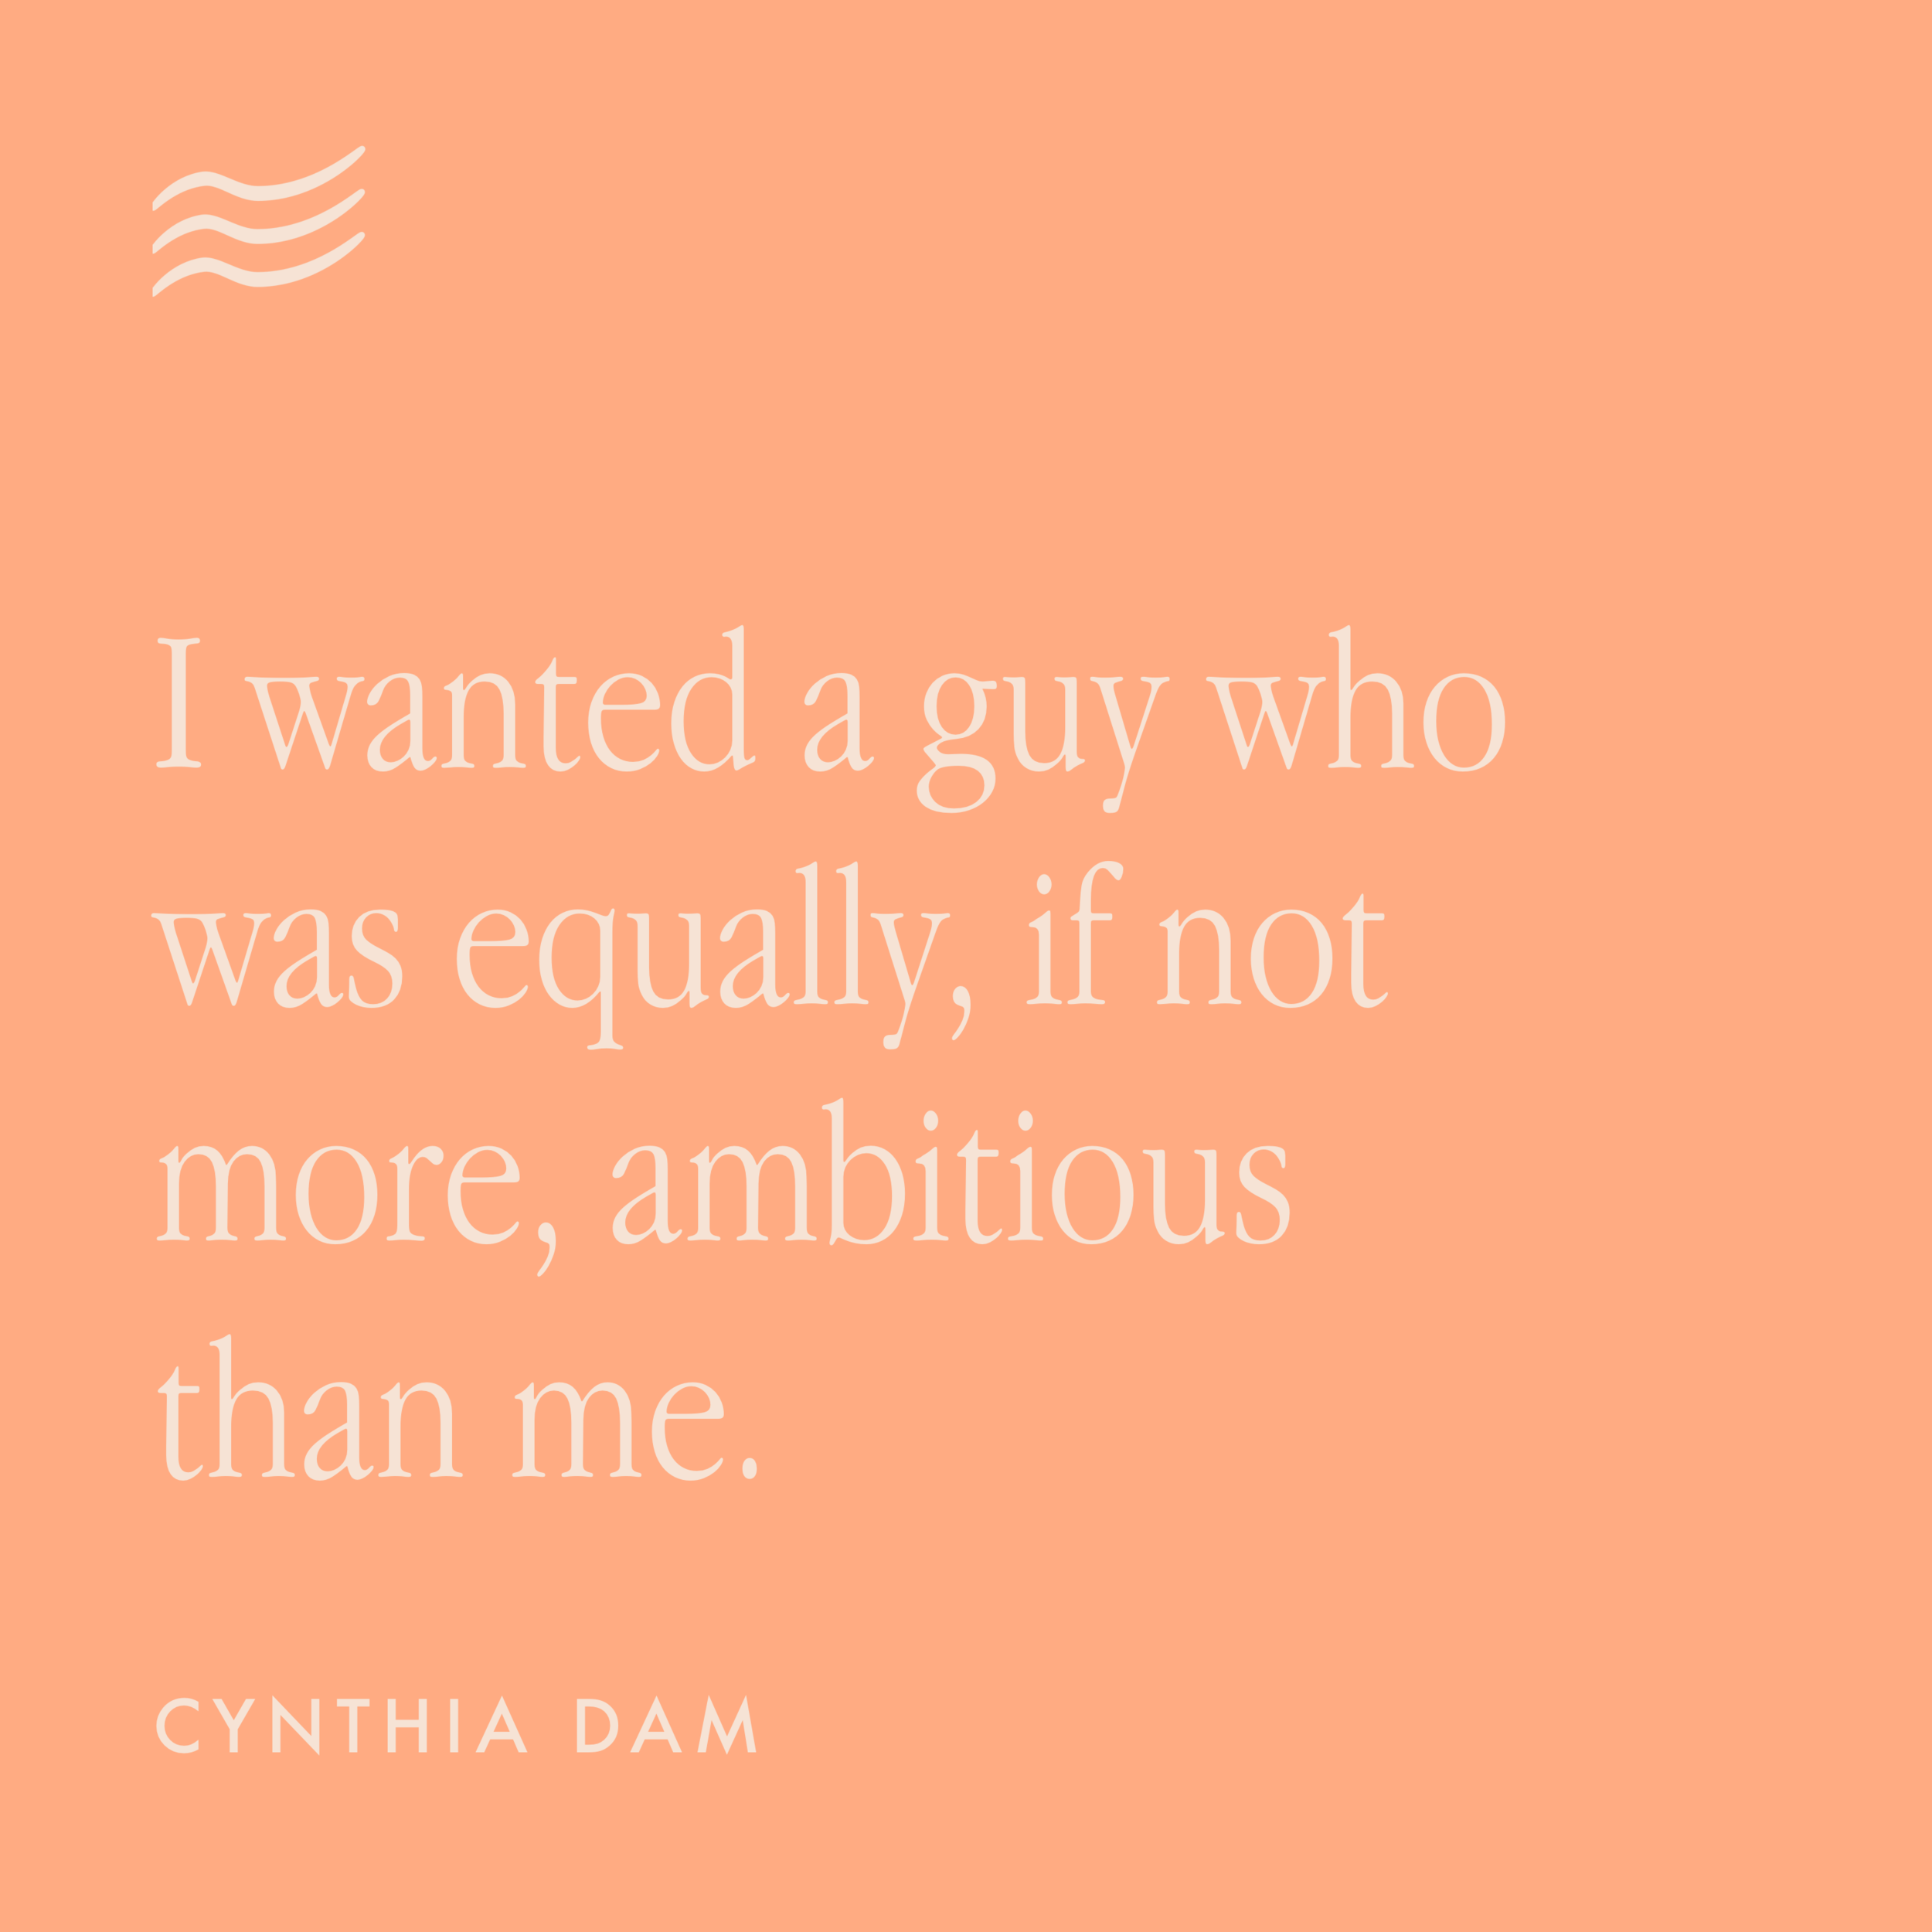 s1ep1 cynthia quote.png